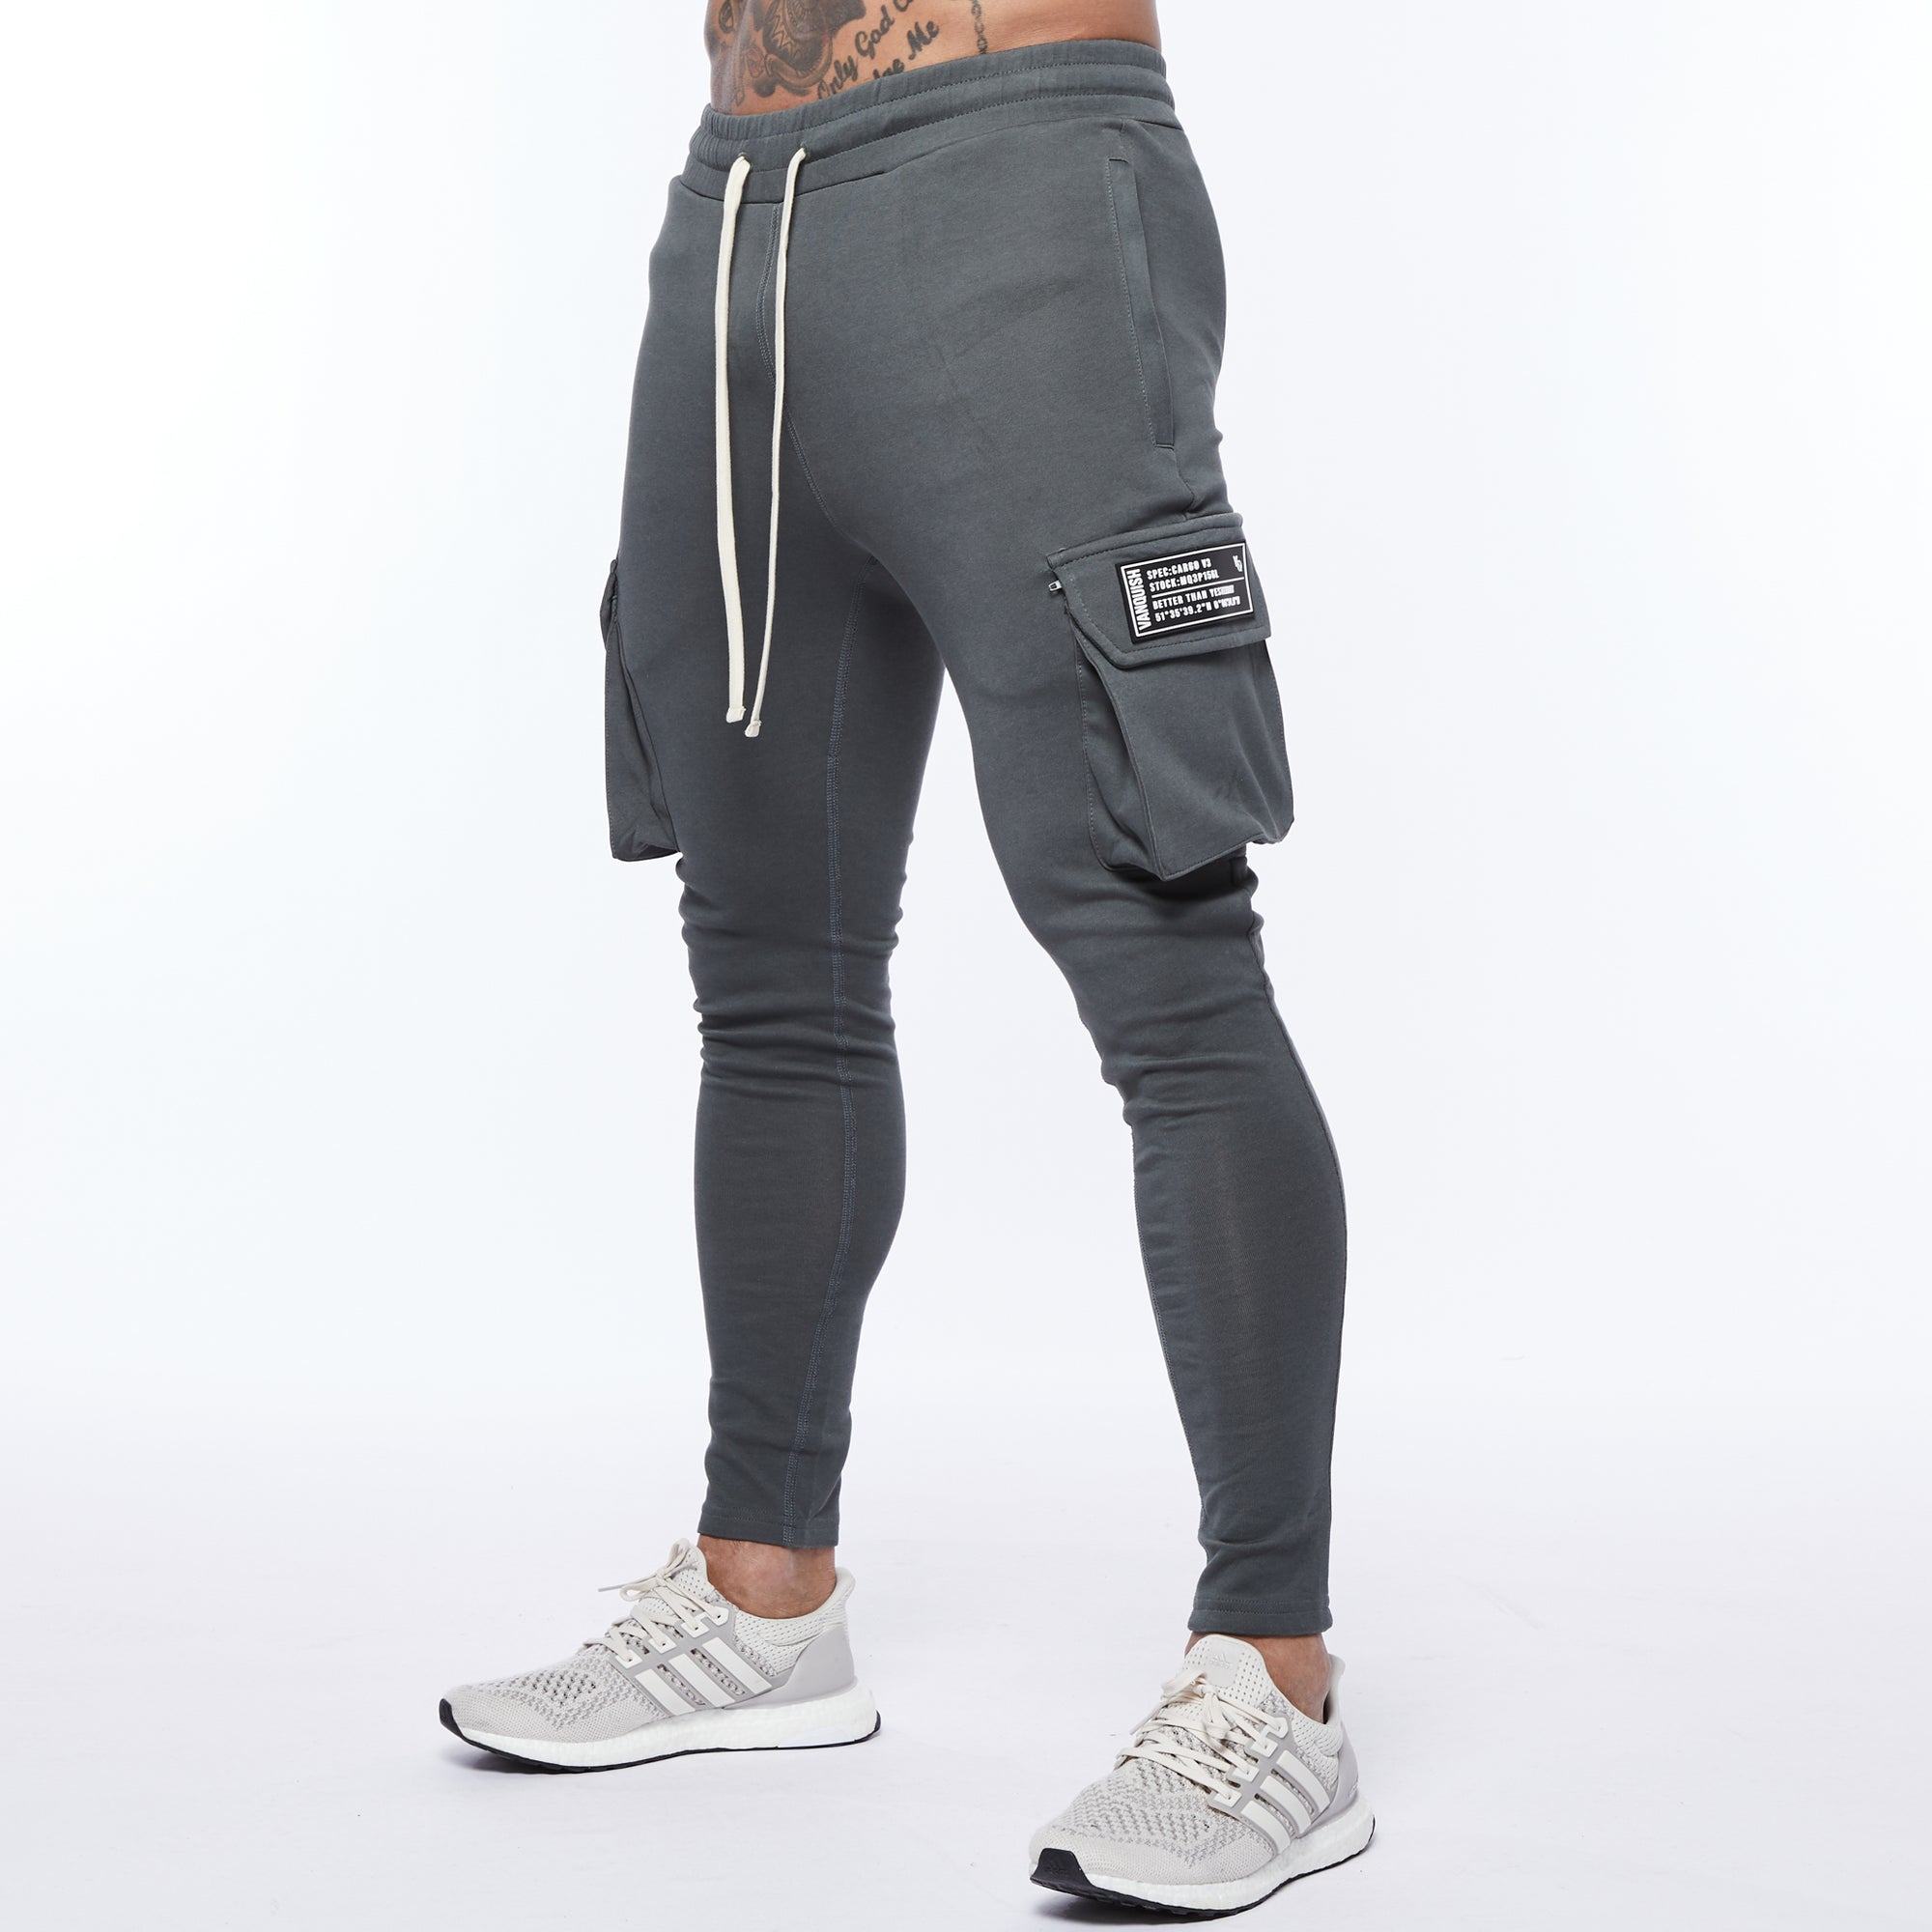 Vanquish Essential Slate Grey Tapered Cargo Sweatpants